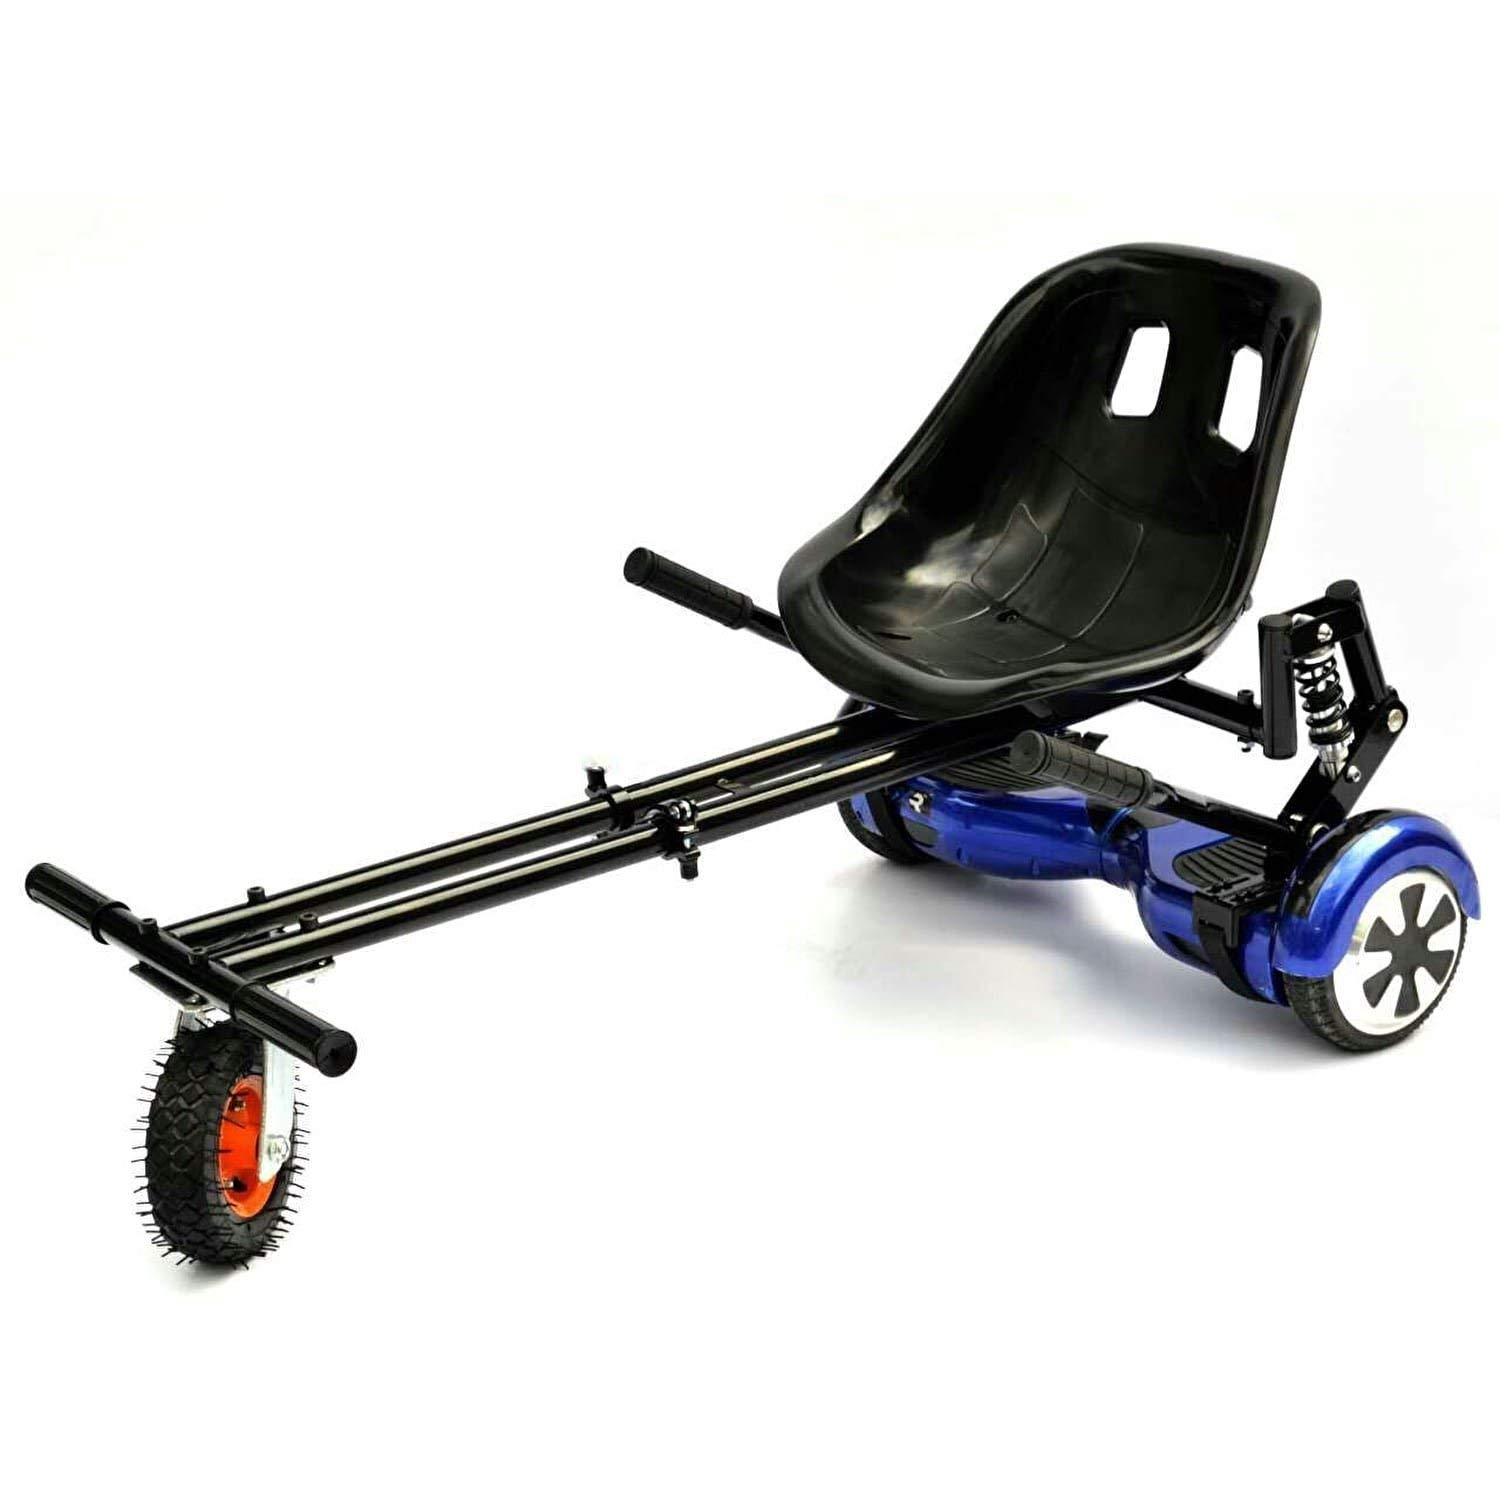 Go kart Monster - Carbon Black: Amazon.co.uk: Sports & Outdoors